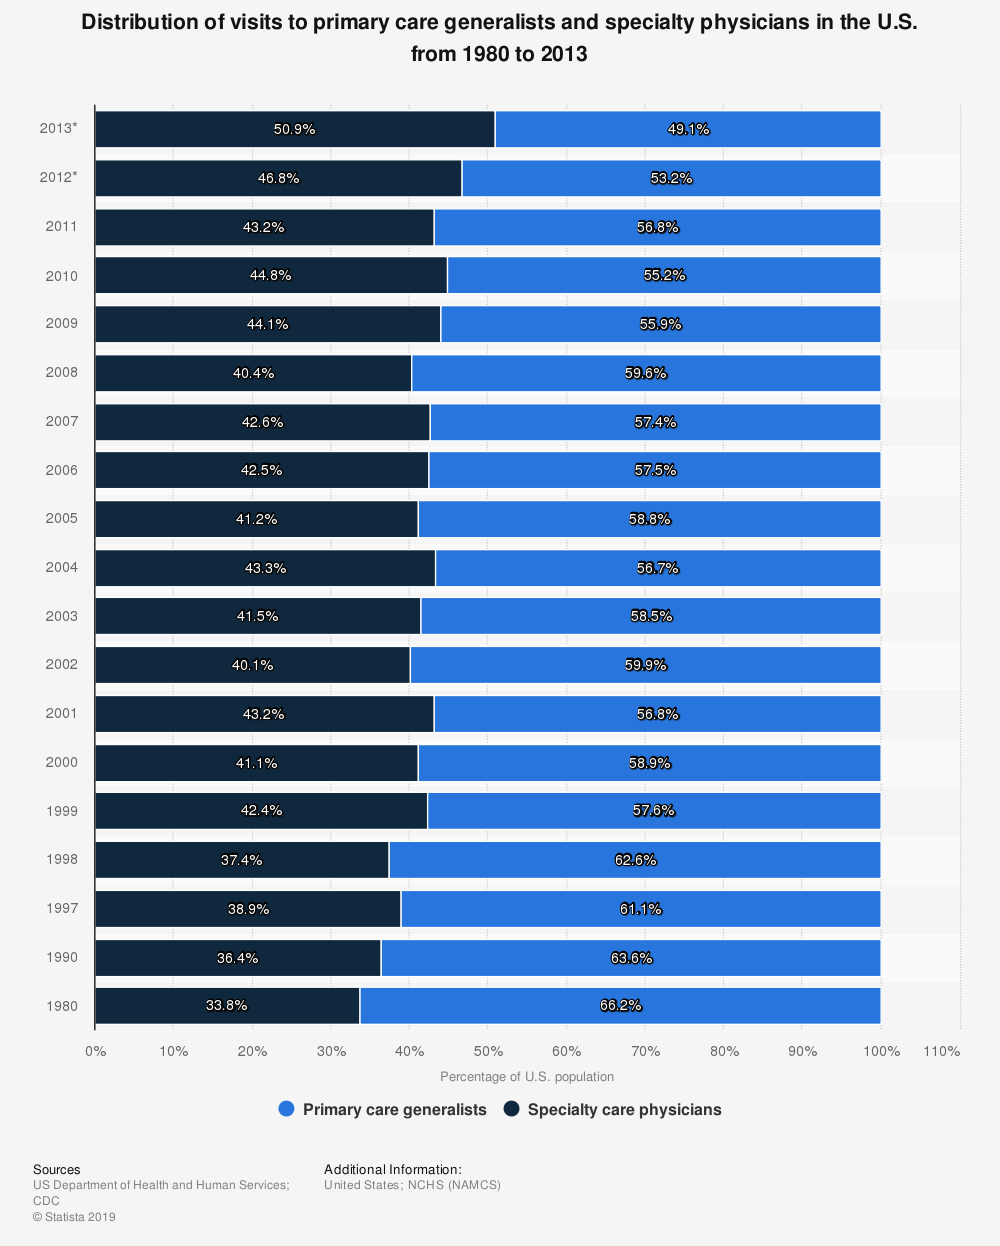 Statistic: Distribution of visits to primary care generalists and specialty physicians in the U.S. from 1980 to 2013 | Statista